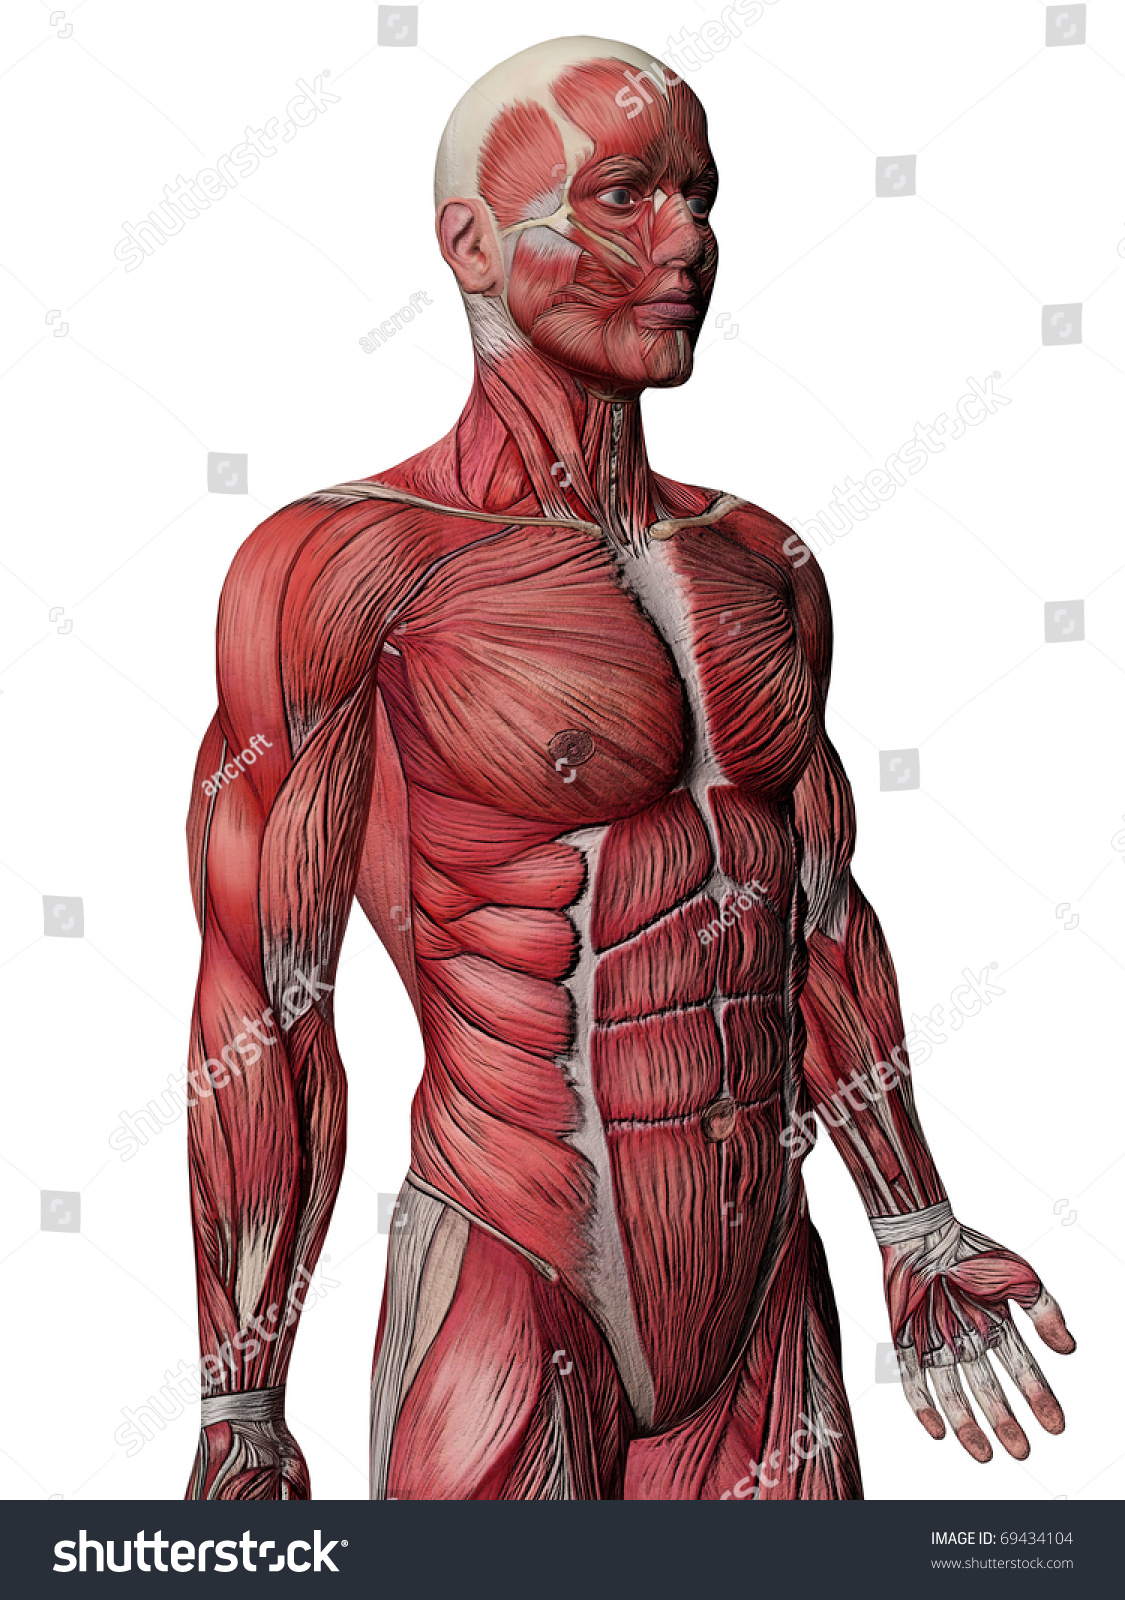 Human Body Muscles Anatomy Stock Illustration 69434104 Shutterstock